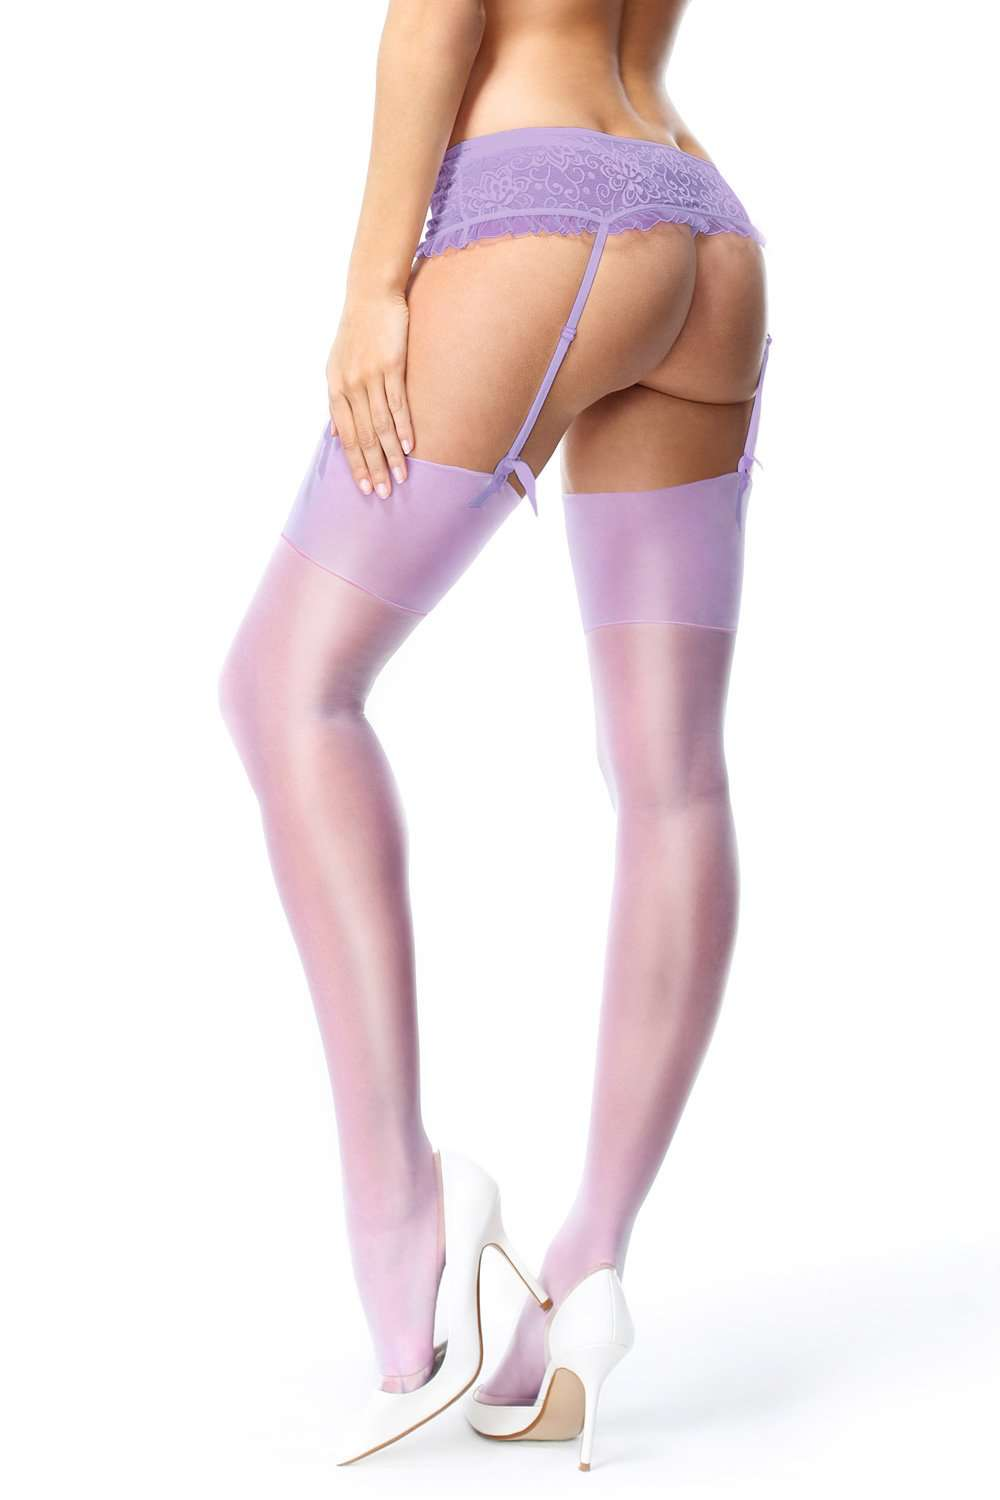 missO Coloured Stockings - 15 Denier - Naughty Knickers